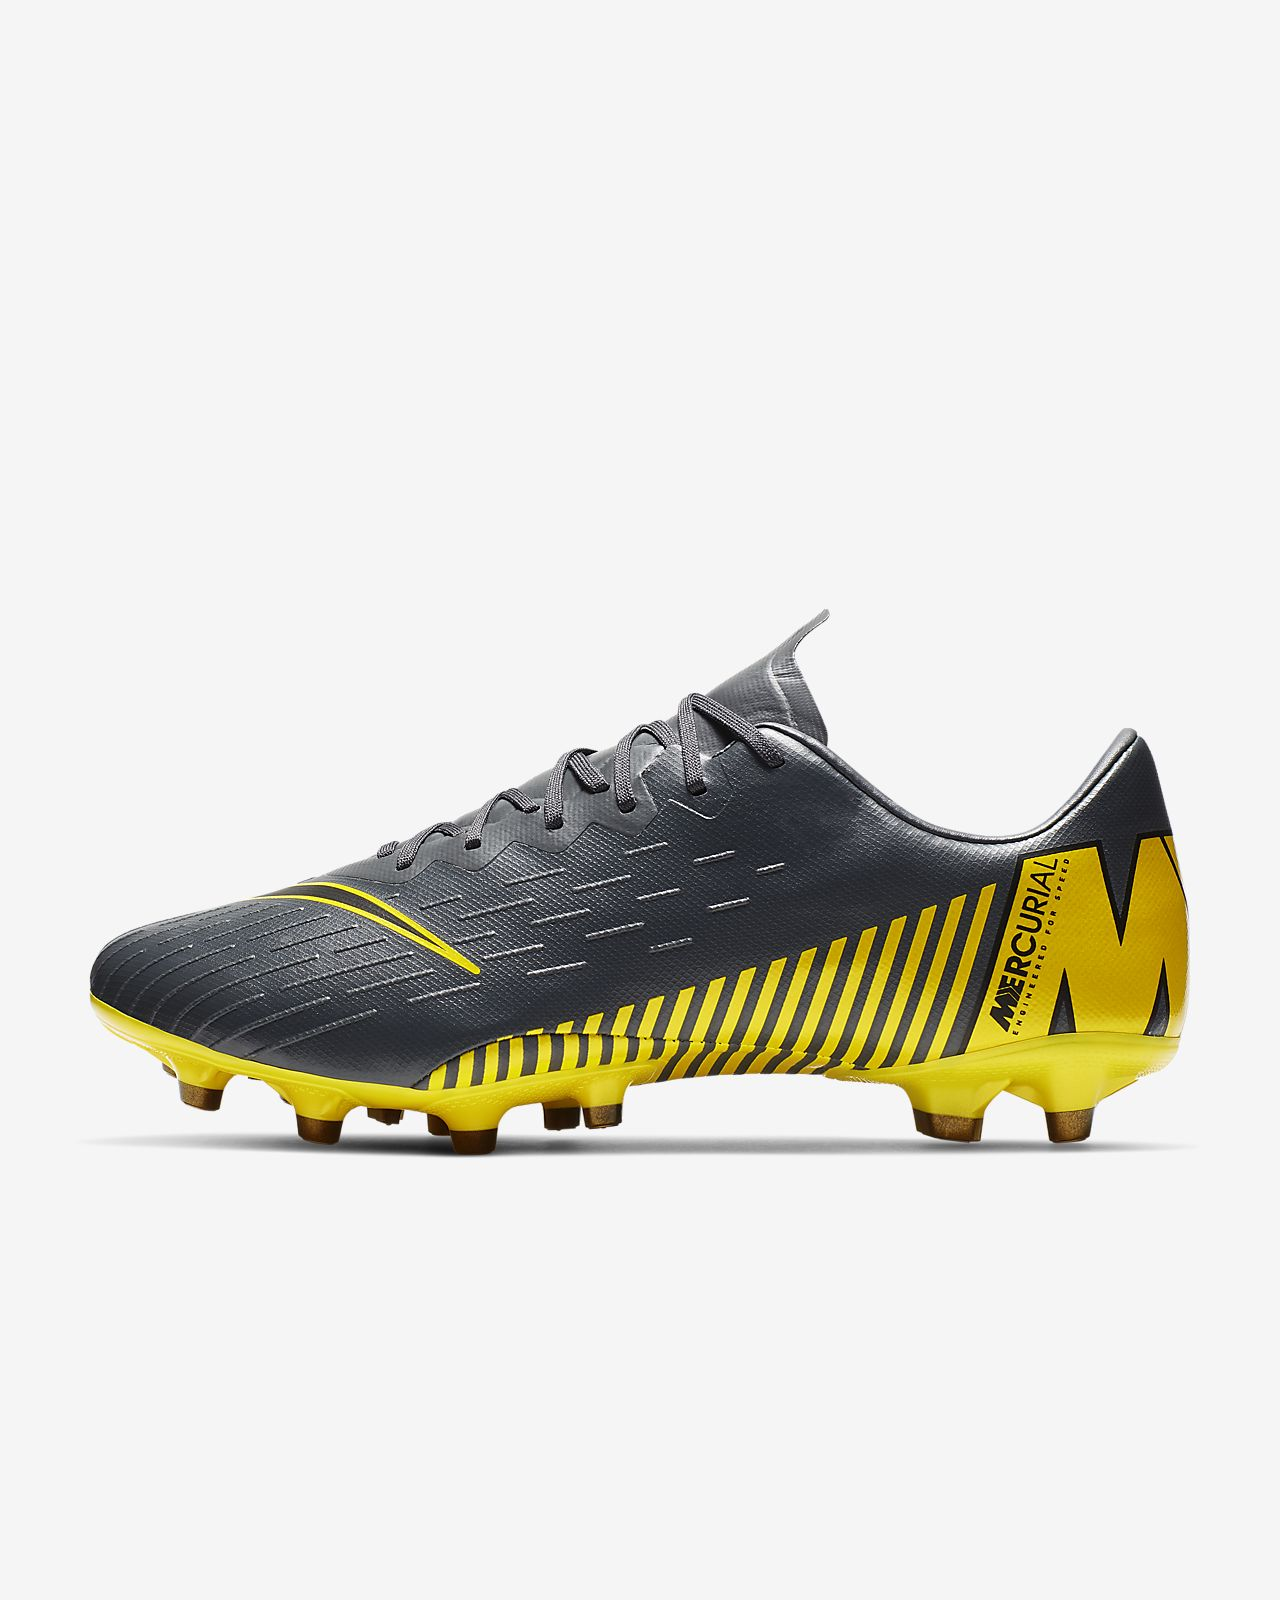 a1c4858afe0d Nike Mercurial Vapor XII Pro AG-PRO Artificial-Grass Football Boot ...